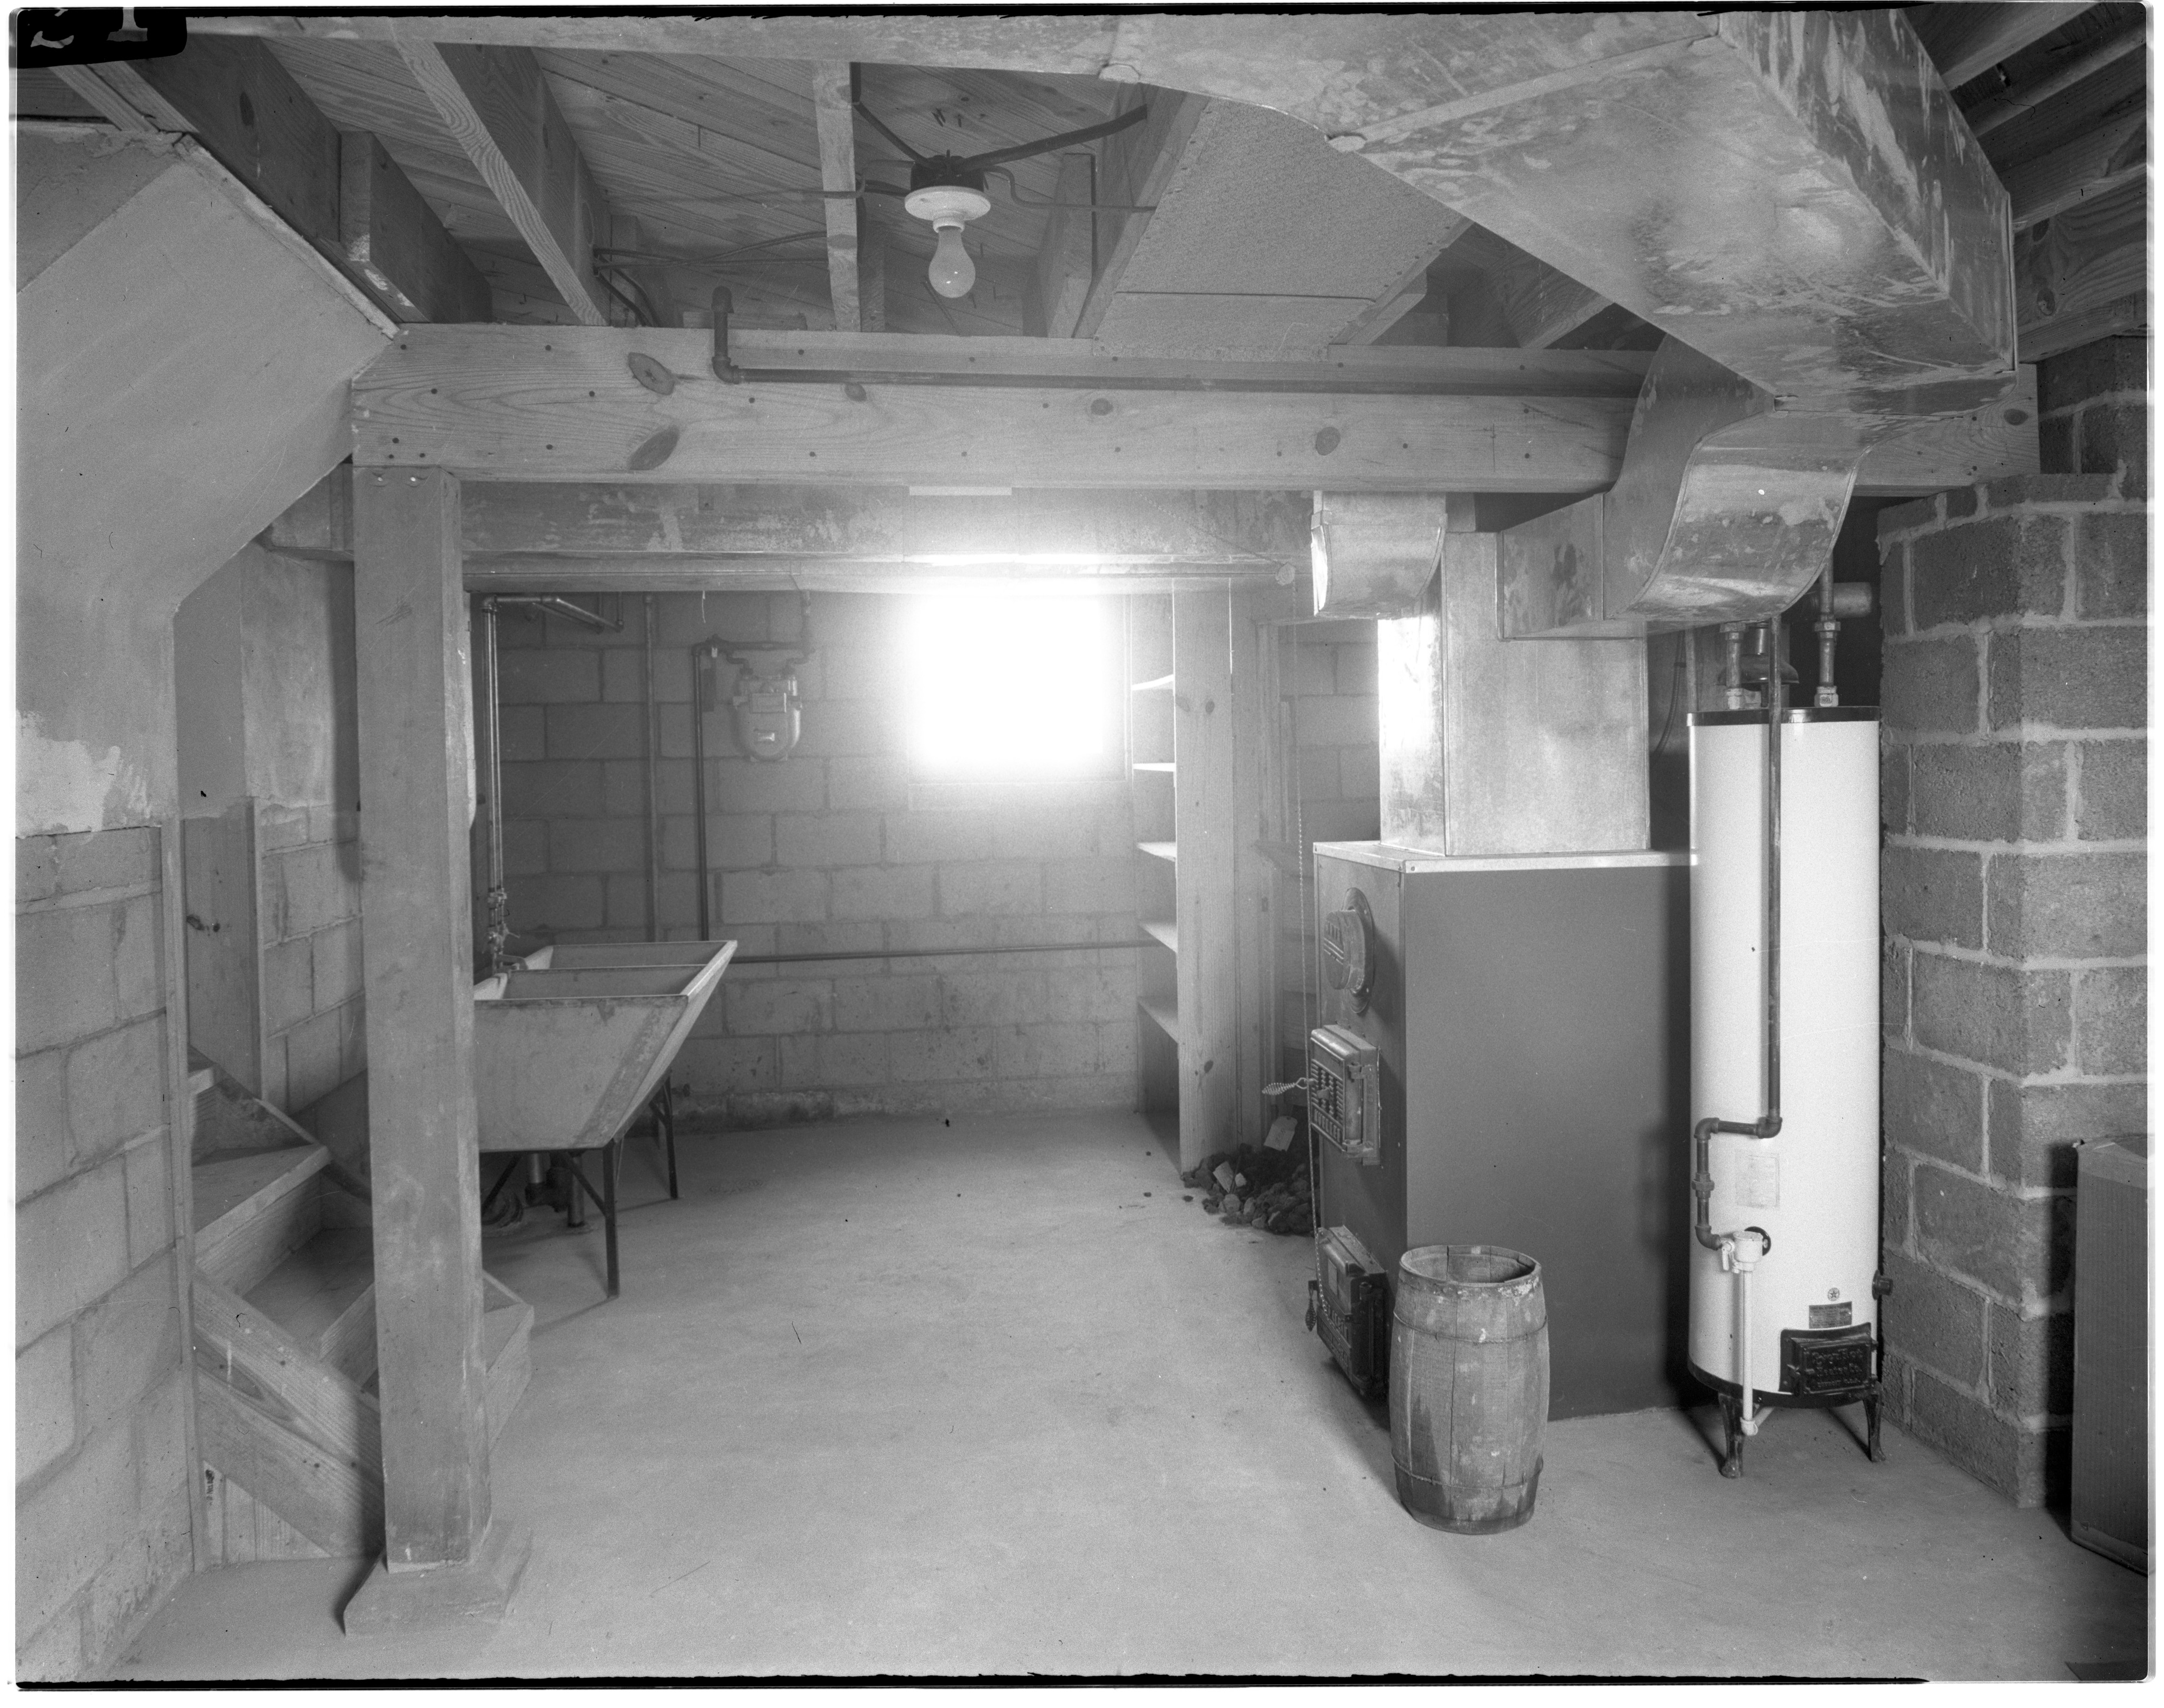 Basement of House in Pittsfield Village, October 1944 image